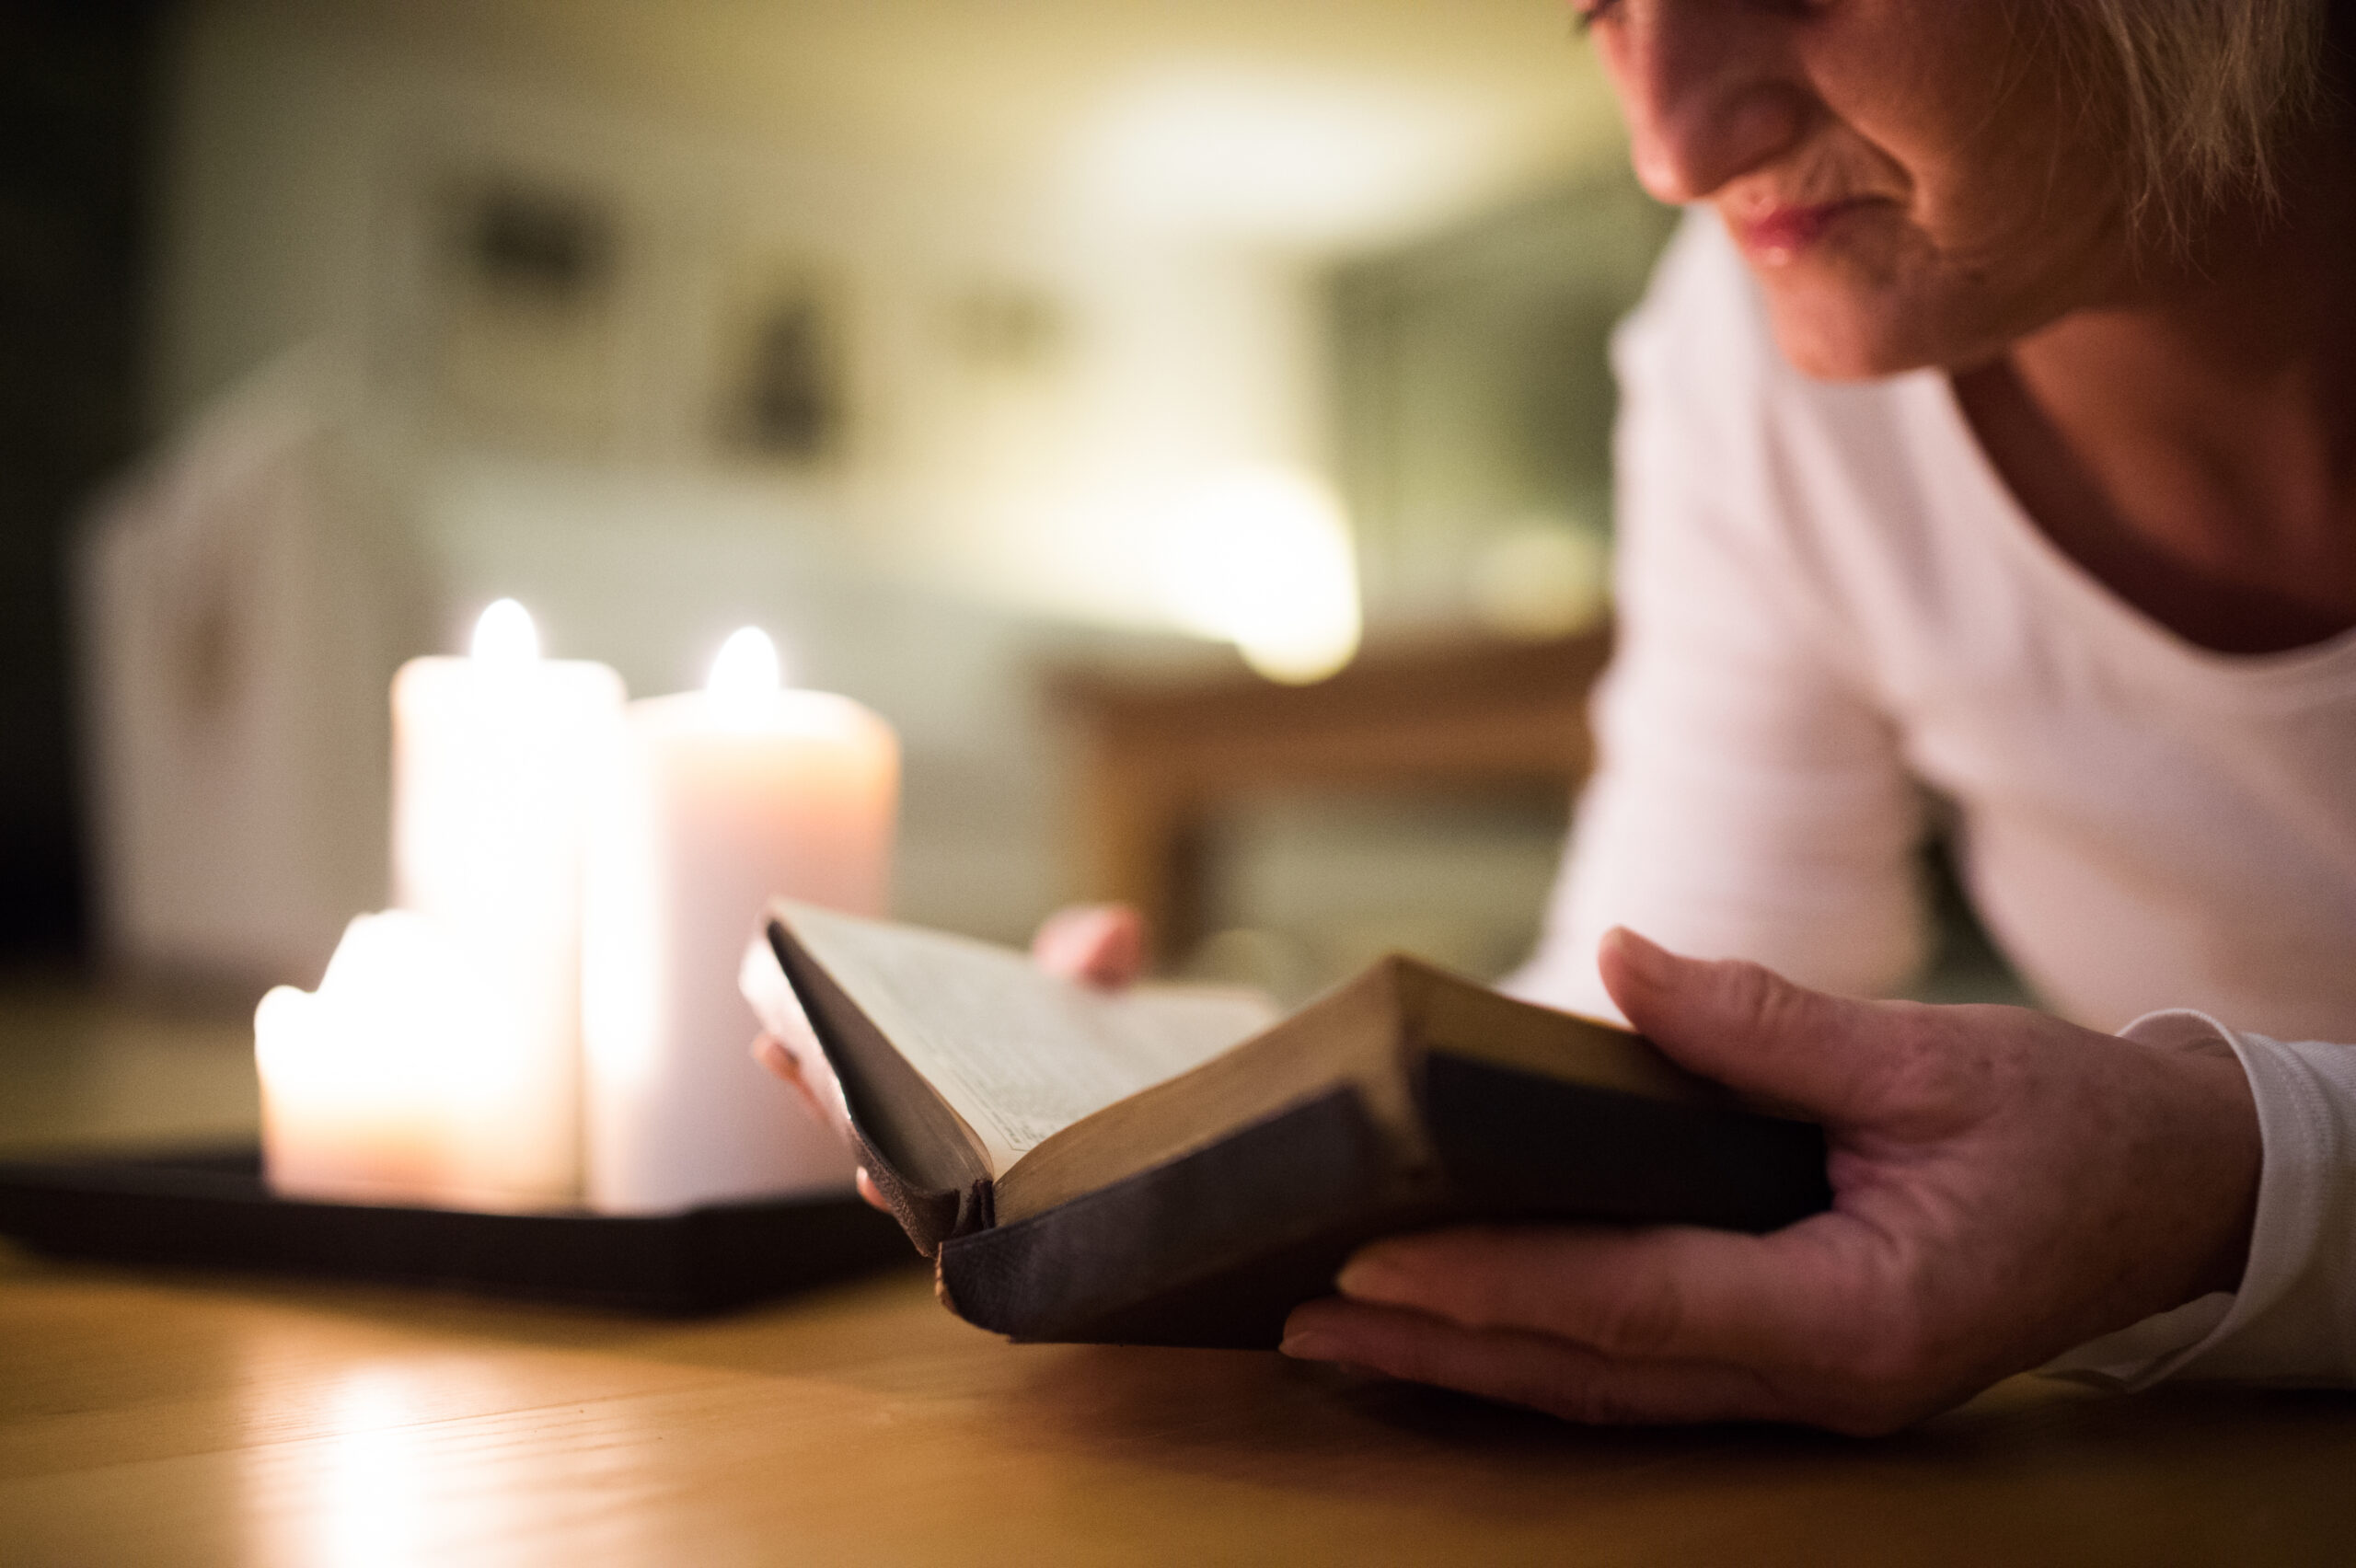 Stock - graphicstock-unrecognizable-woman-lying-on-the-floor-reading-her-bible-burning-candles-next-to-her-close-up_Bdncn_Iz-